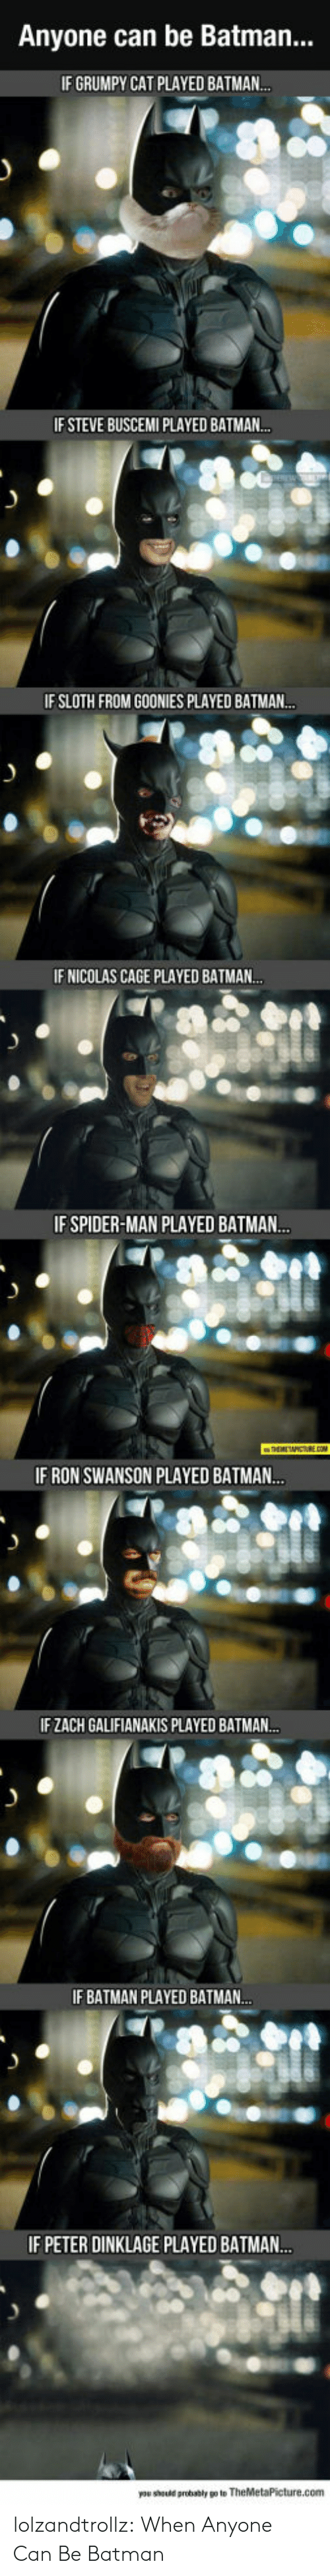 Batman, Nicolas Cage, and Ron Swanson: Anyone can be Batman...  IF GRUMPY CAT PLAYED BATMAN..  IF STEVE BUSCEMI PLAYED BATMAN..  IF SLOTH FROM GOONIES PLAYED BATMAN..  IF NICOLAS CAGE PLAYED BATMAN..  IF SPIDER-MAN PLAYED BATMAN...  IF RON SWANSON PLAYED BATMAN..  IF ZACH GALIFIANAKIS PLAYED BATMAN..  IF BATMAN PLAYED BATMAN.  IF PETER DINKLAGE PLAYED BATMA..  you should probably po to TheMetaPicture.com lolzandtrollz:  When Anyone Can Be Batman